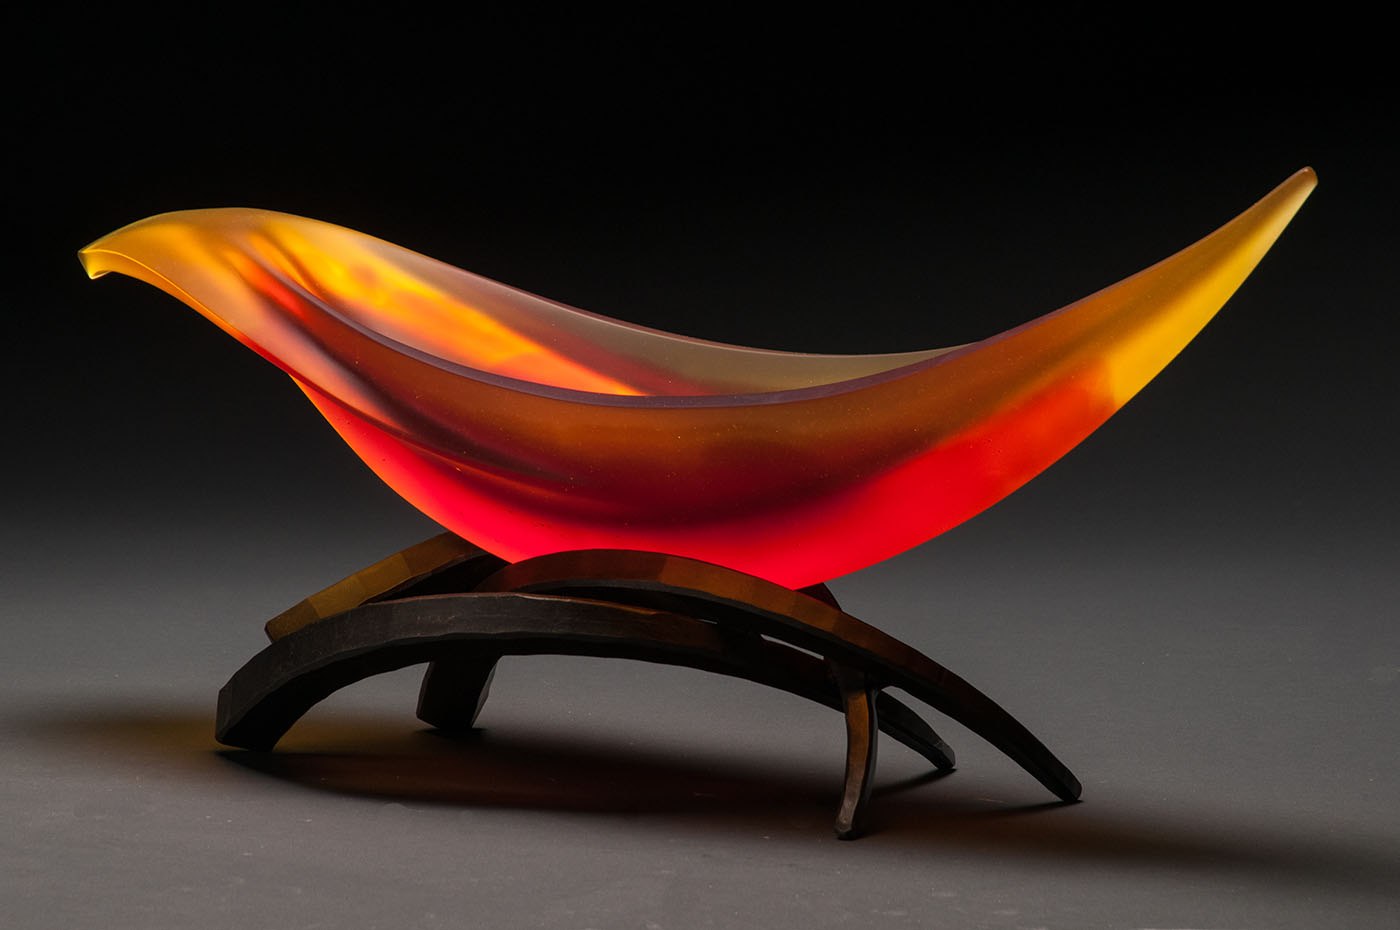 Elliptical Vessel in Yellow & Orange by Brian Russell (Art Glass)